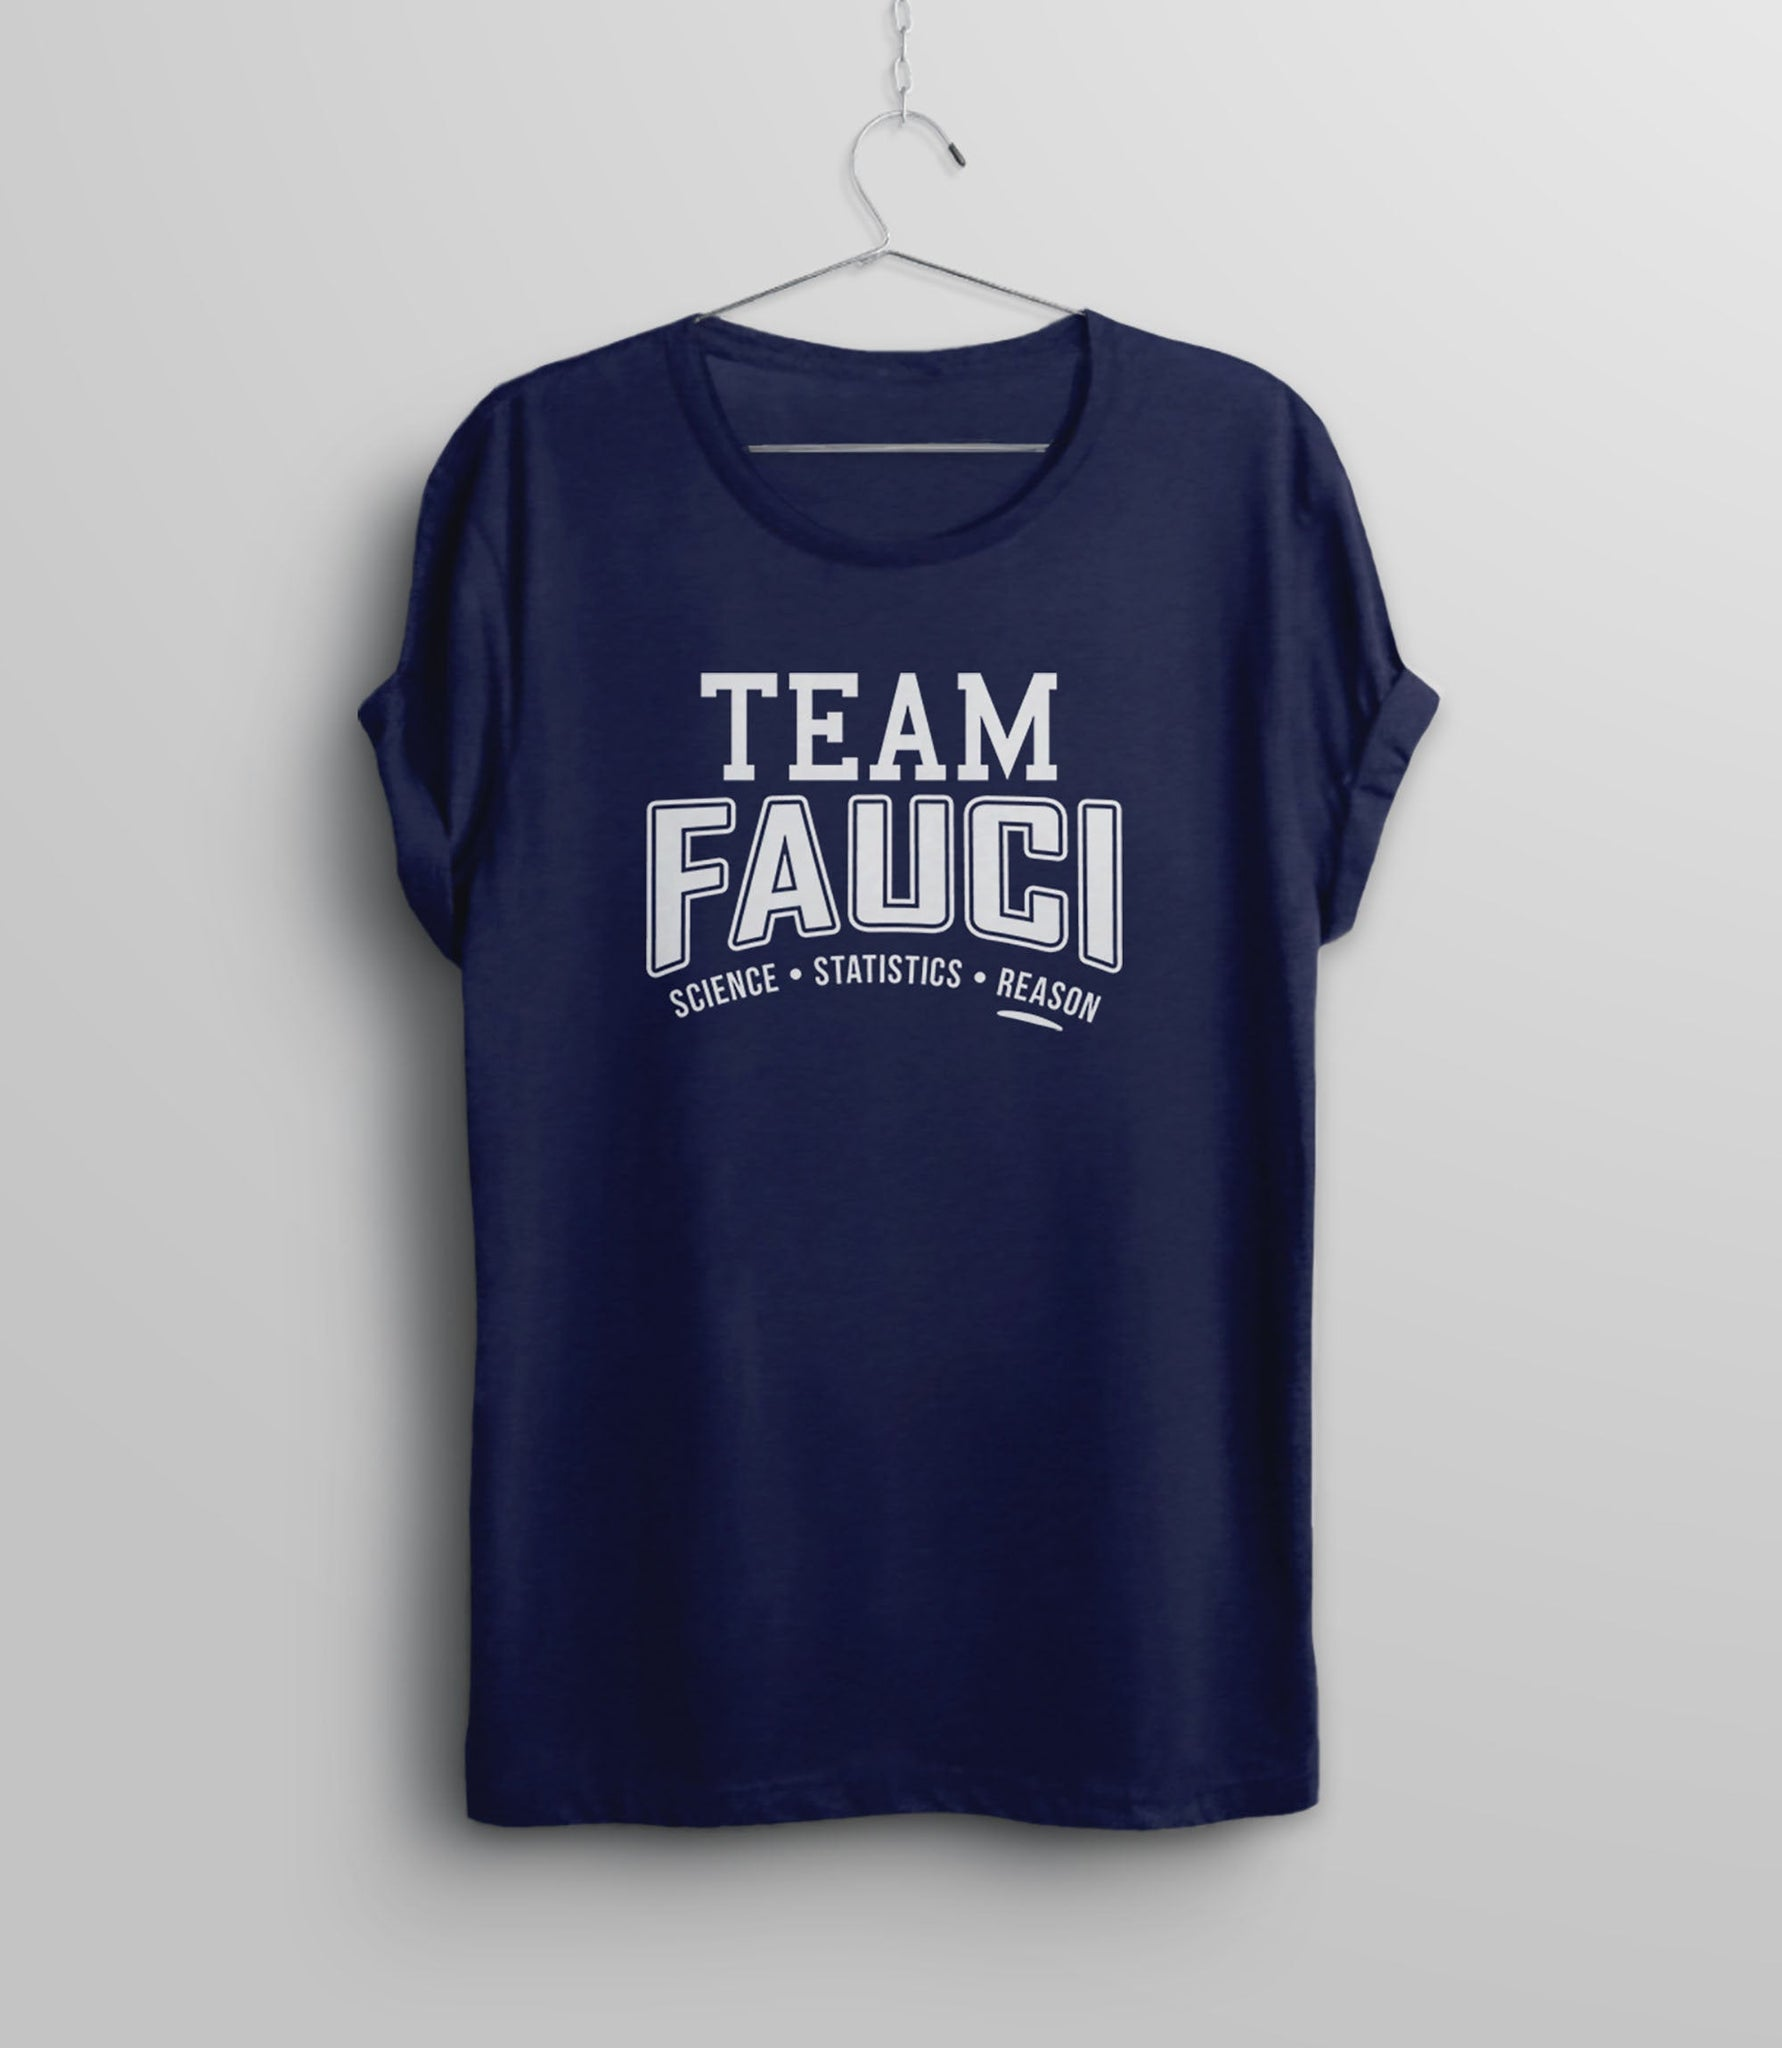 Team Fauci Shirt, Royal Blue Unisex S by BootsTees